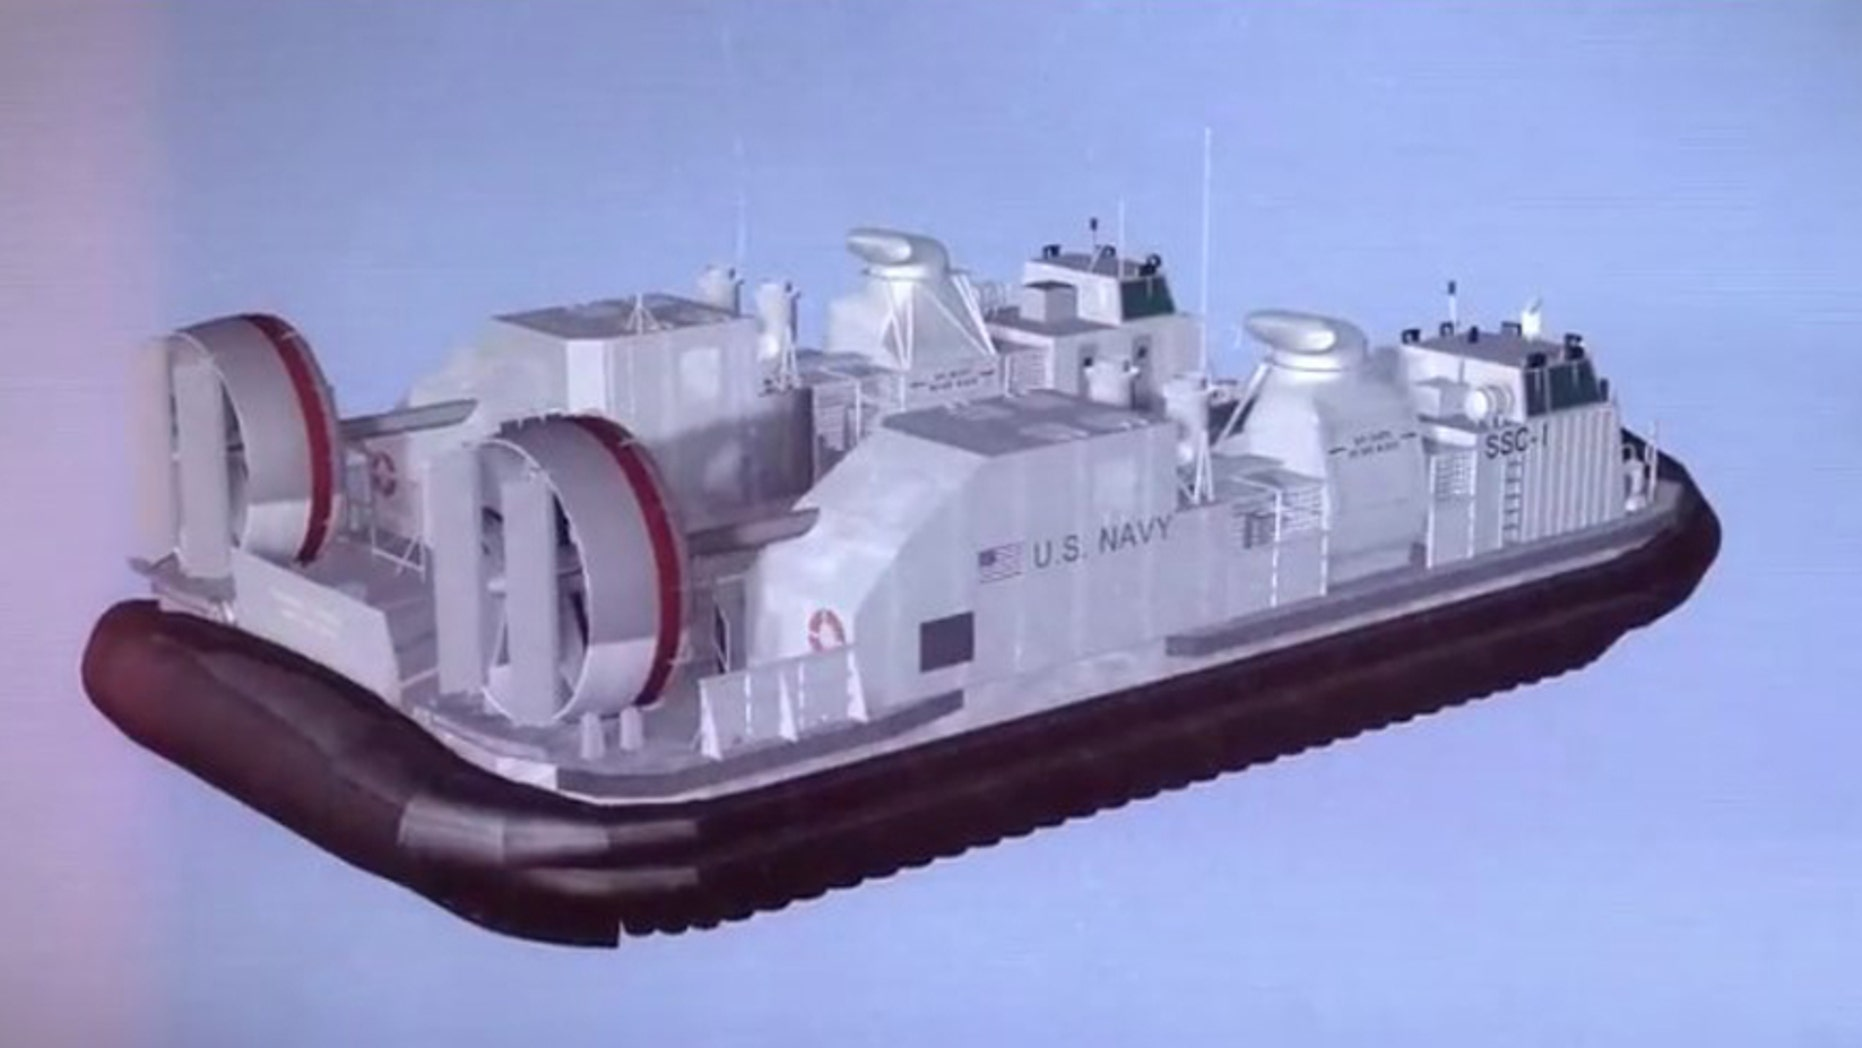 Artist's impression of the U.S. Navy's first newly built Ship-to-Shore Connector maritime warfare craft